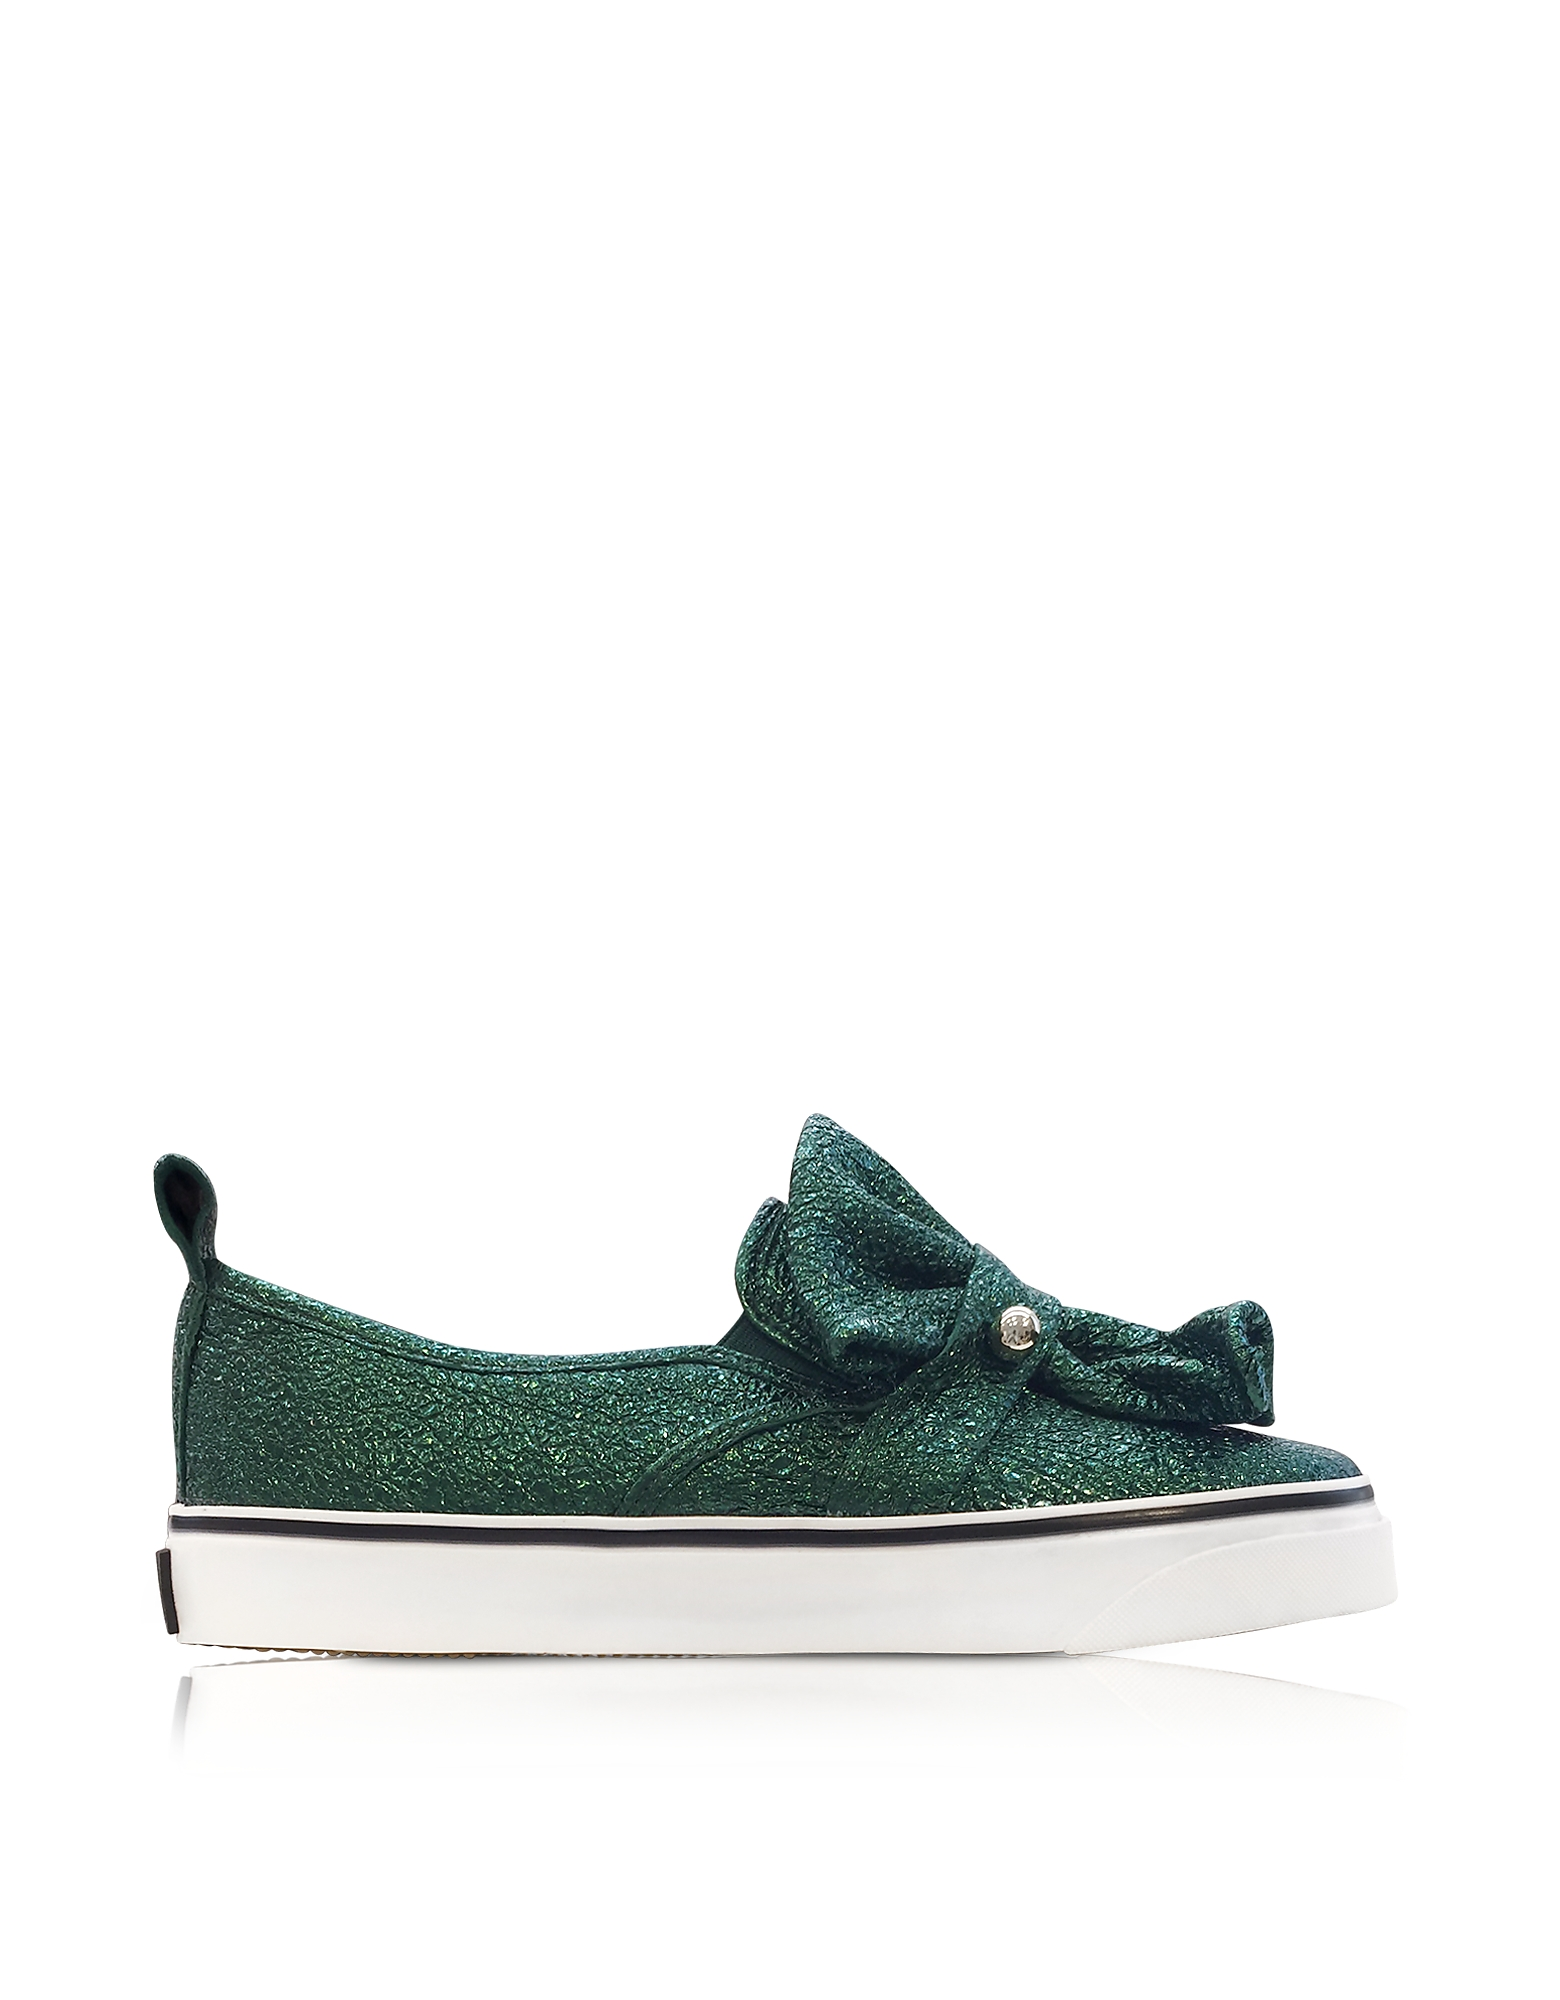 Dark Green Crackled Metallic Leather Slip On Sneakers